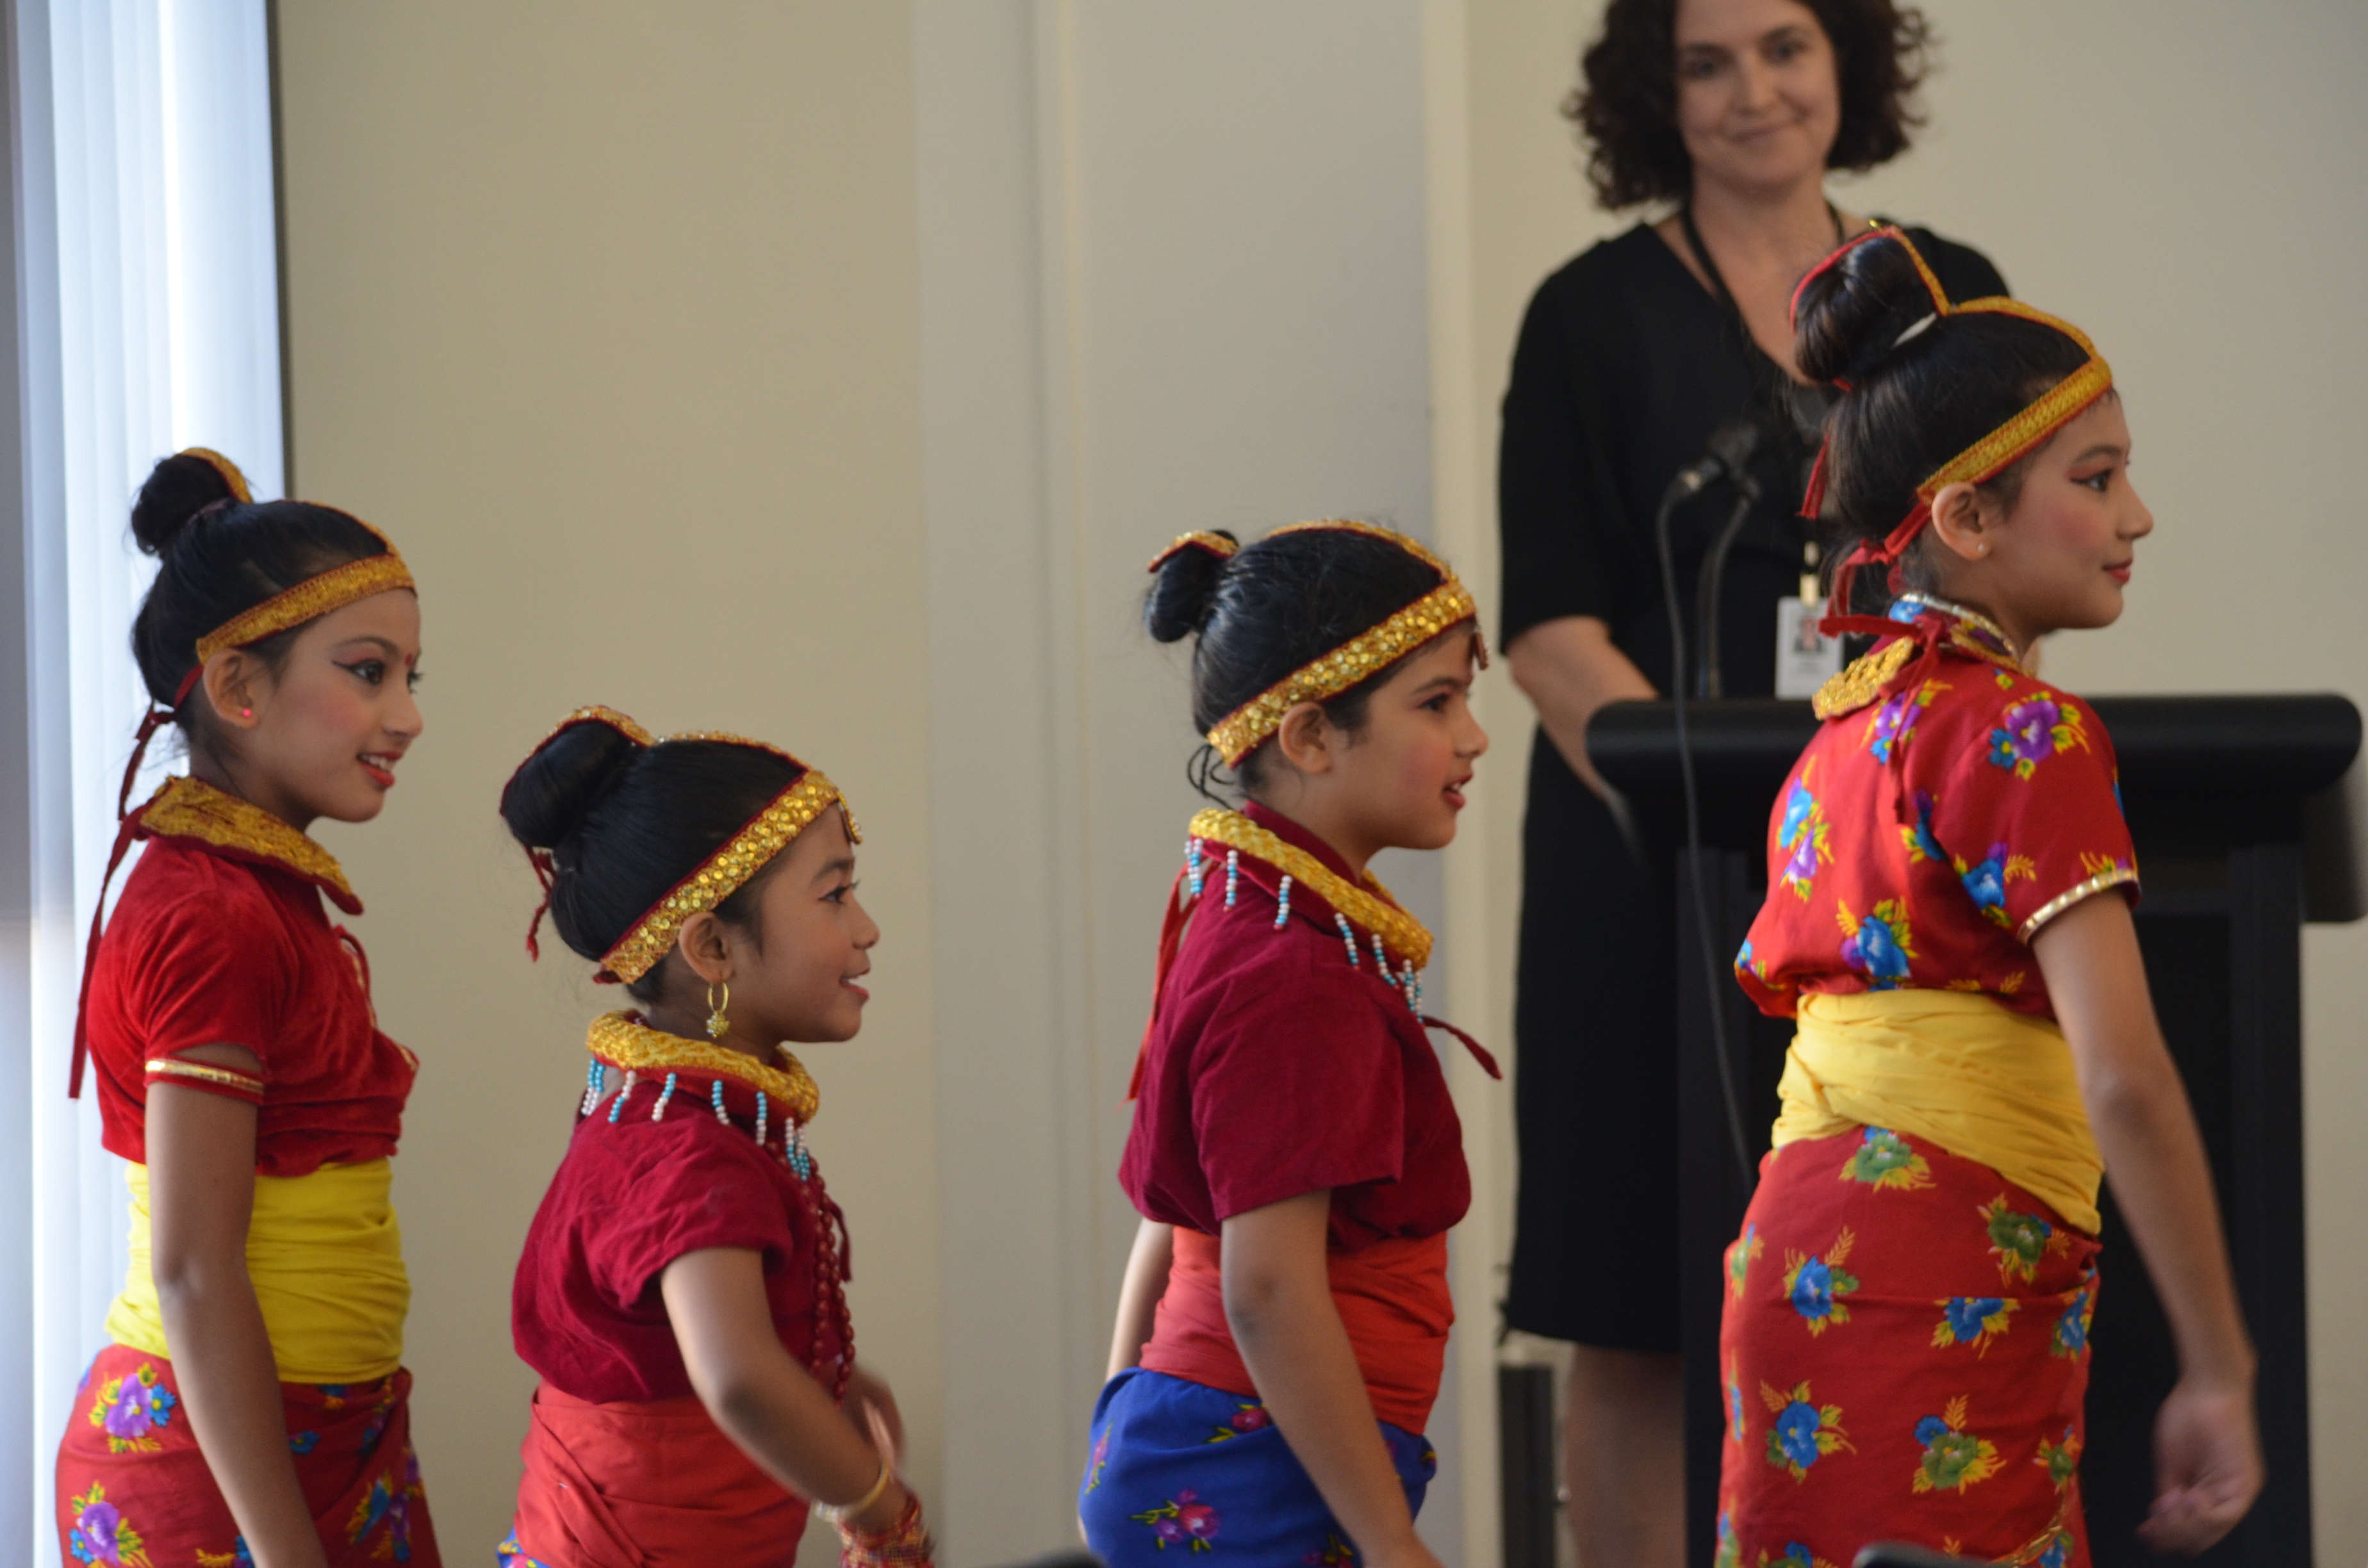 Fastest growing australian community excited to borrow nepali books traditionally dressed nepali girls performing at the inaugural ceremony of the nepali language section at hurstville library also in the picture is the ccuart Images